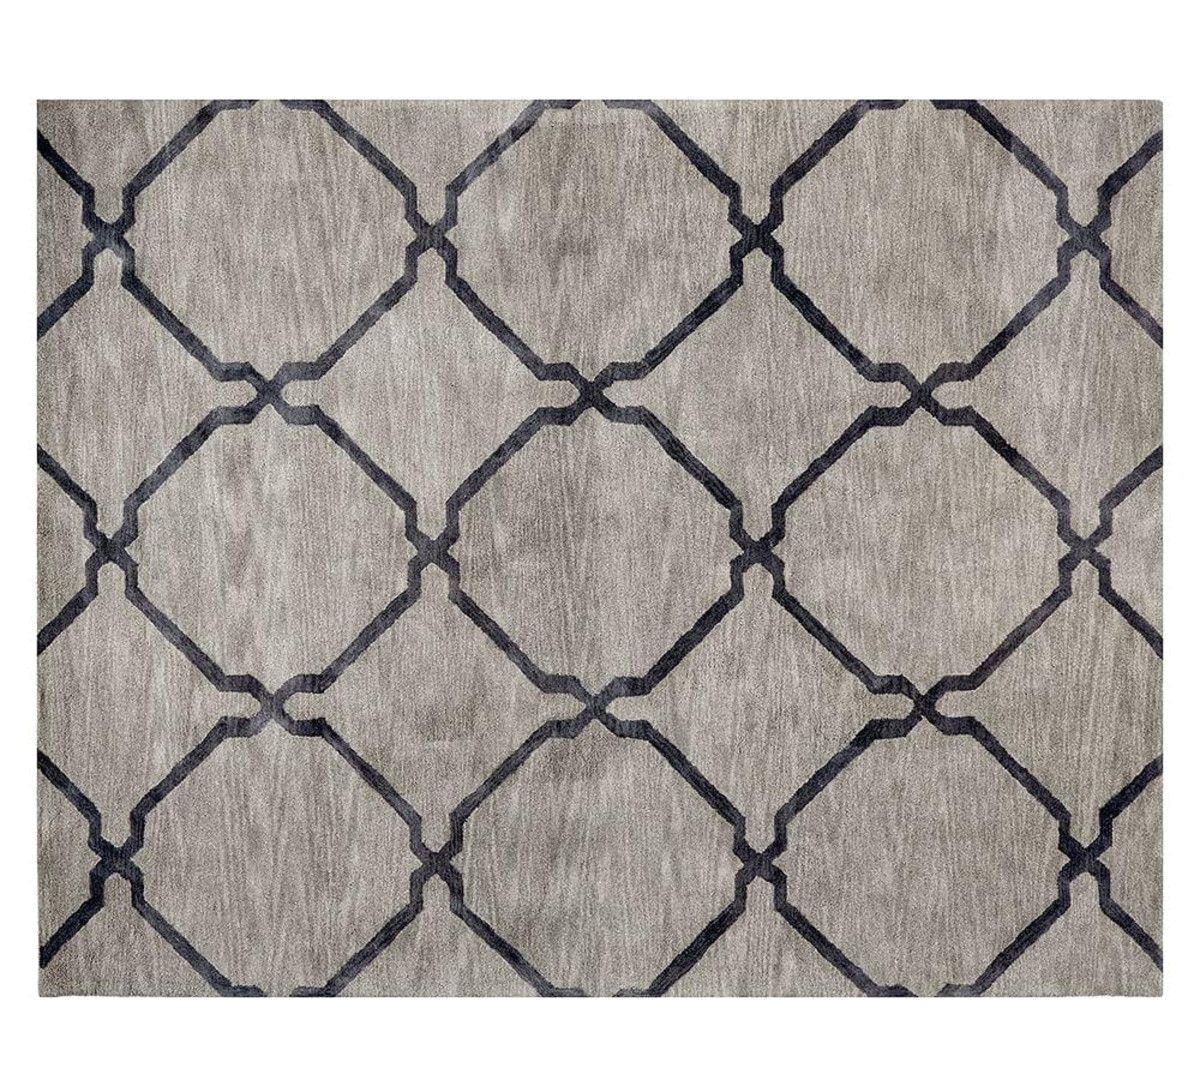 Pottery Barn Rugs 8 10 Tonal Tile Tufted Rug Grey Pottery Barn Au